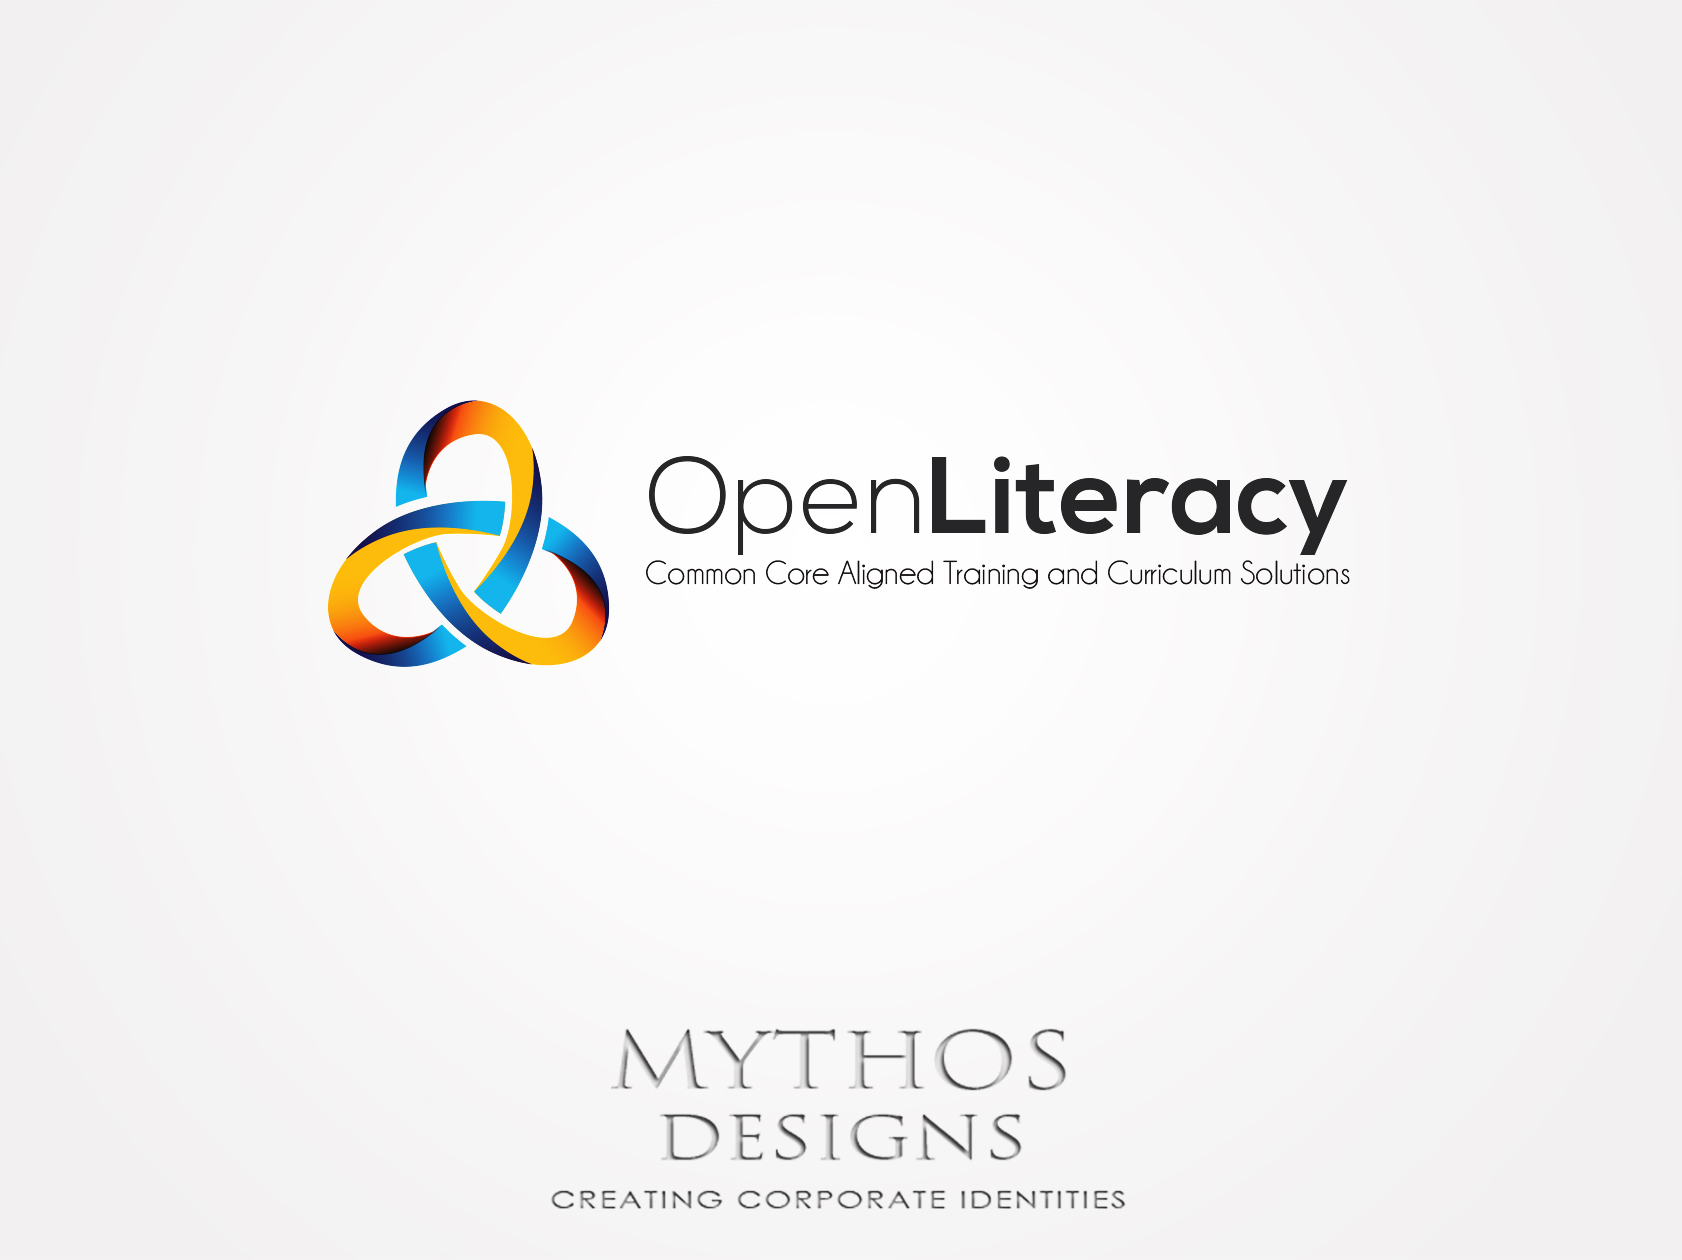 Logo Design by Mythos Designs - Entry No. 94 in the Logo Design Contest Inspiring Logo Design for OpenLiteracy.